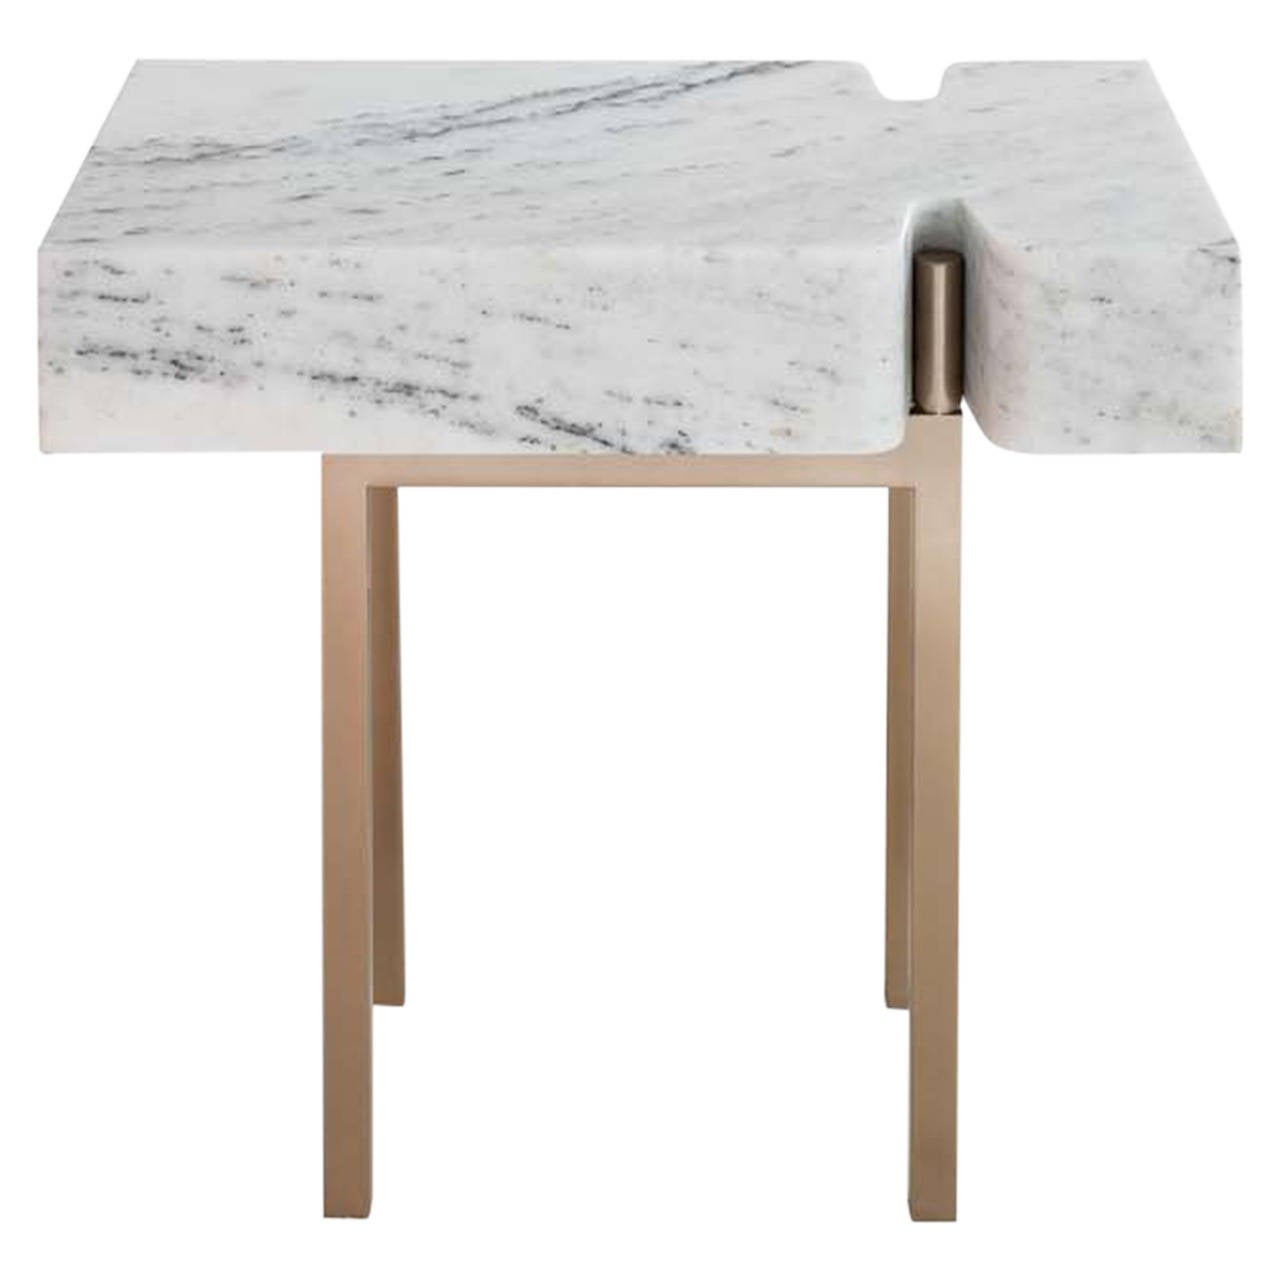 Perfect Terranova Side Table Or End Table With Hewn Marble Top And Bronze Base 1